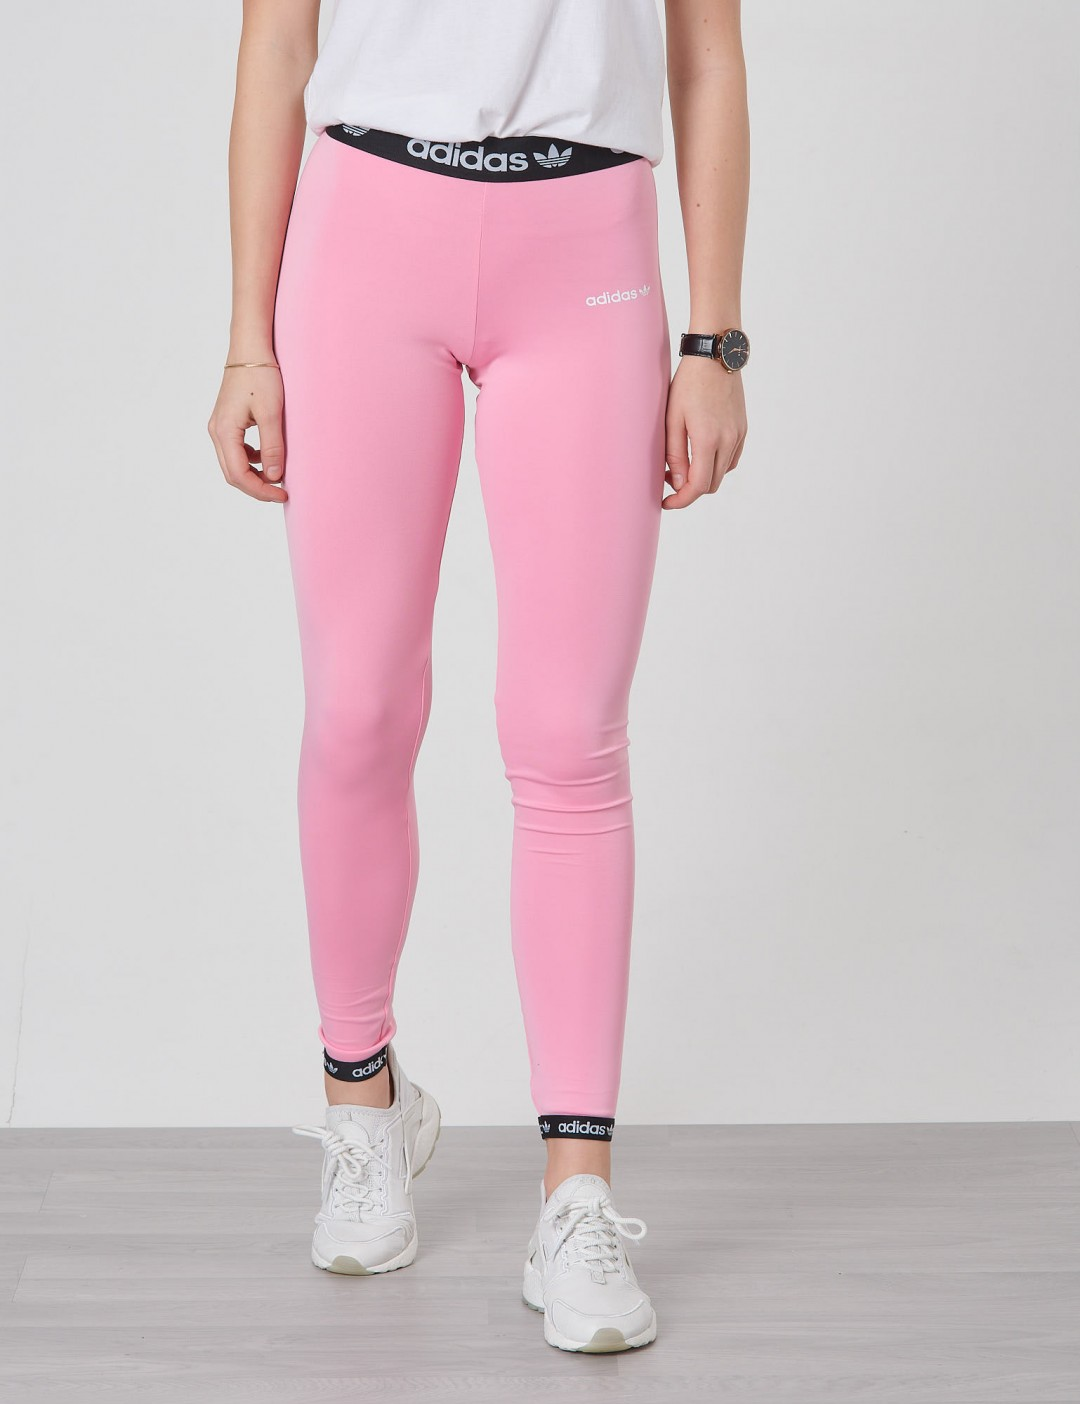 adidas essentials rosa schwarz top